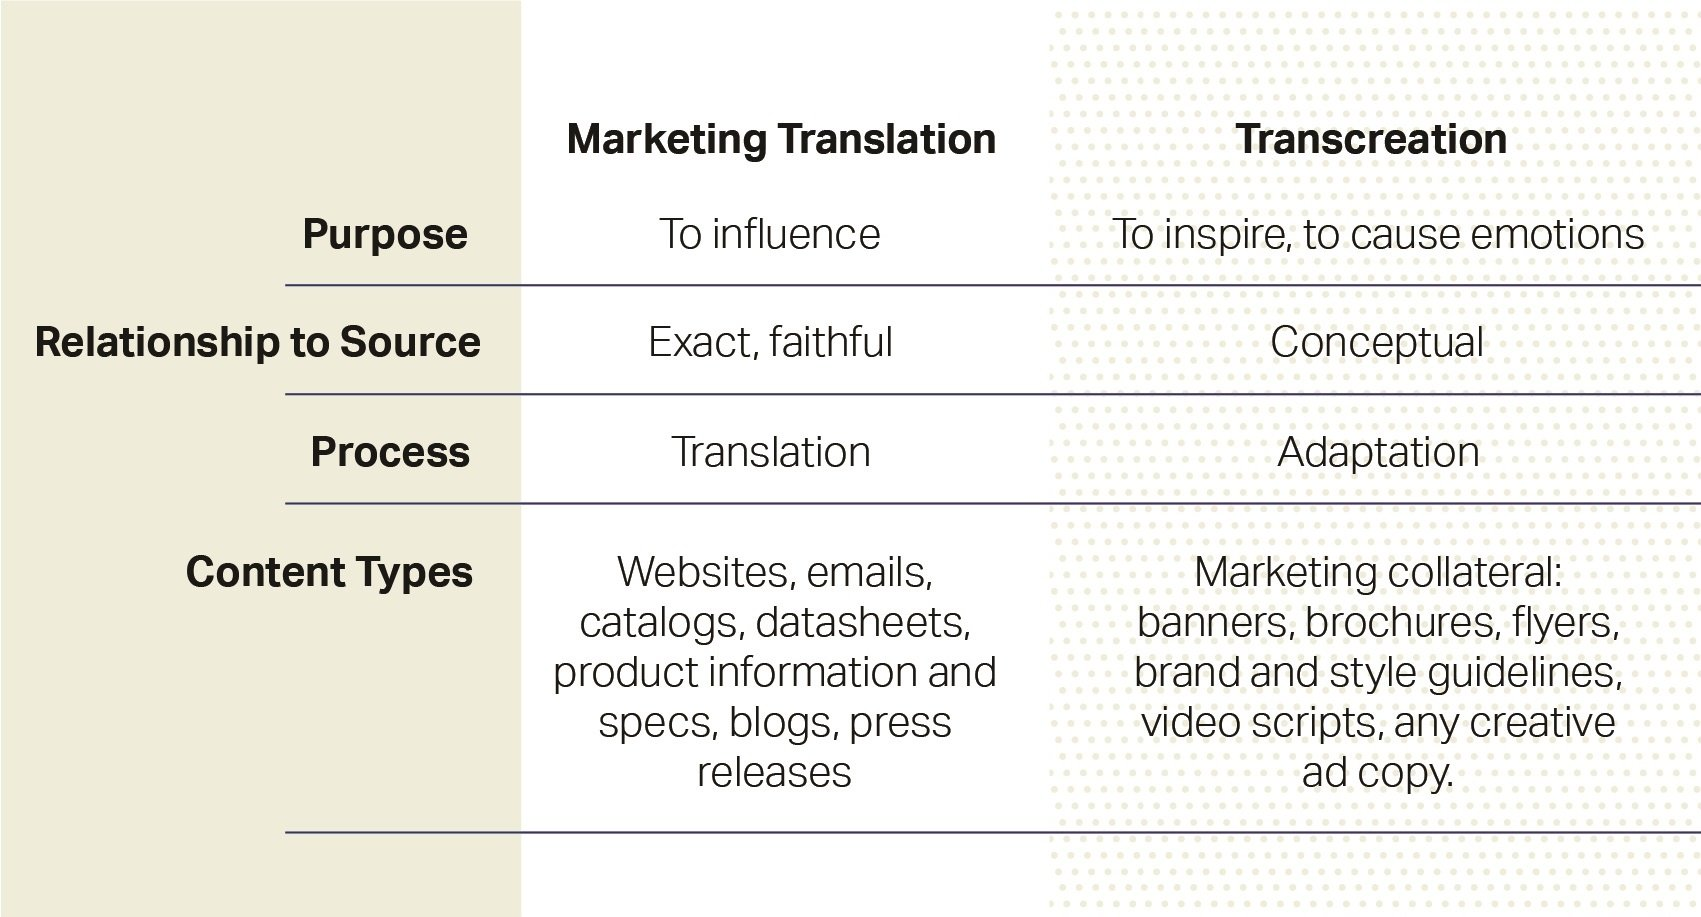 marketing translation versus transcreation chart